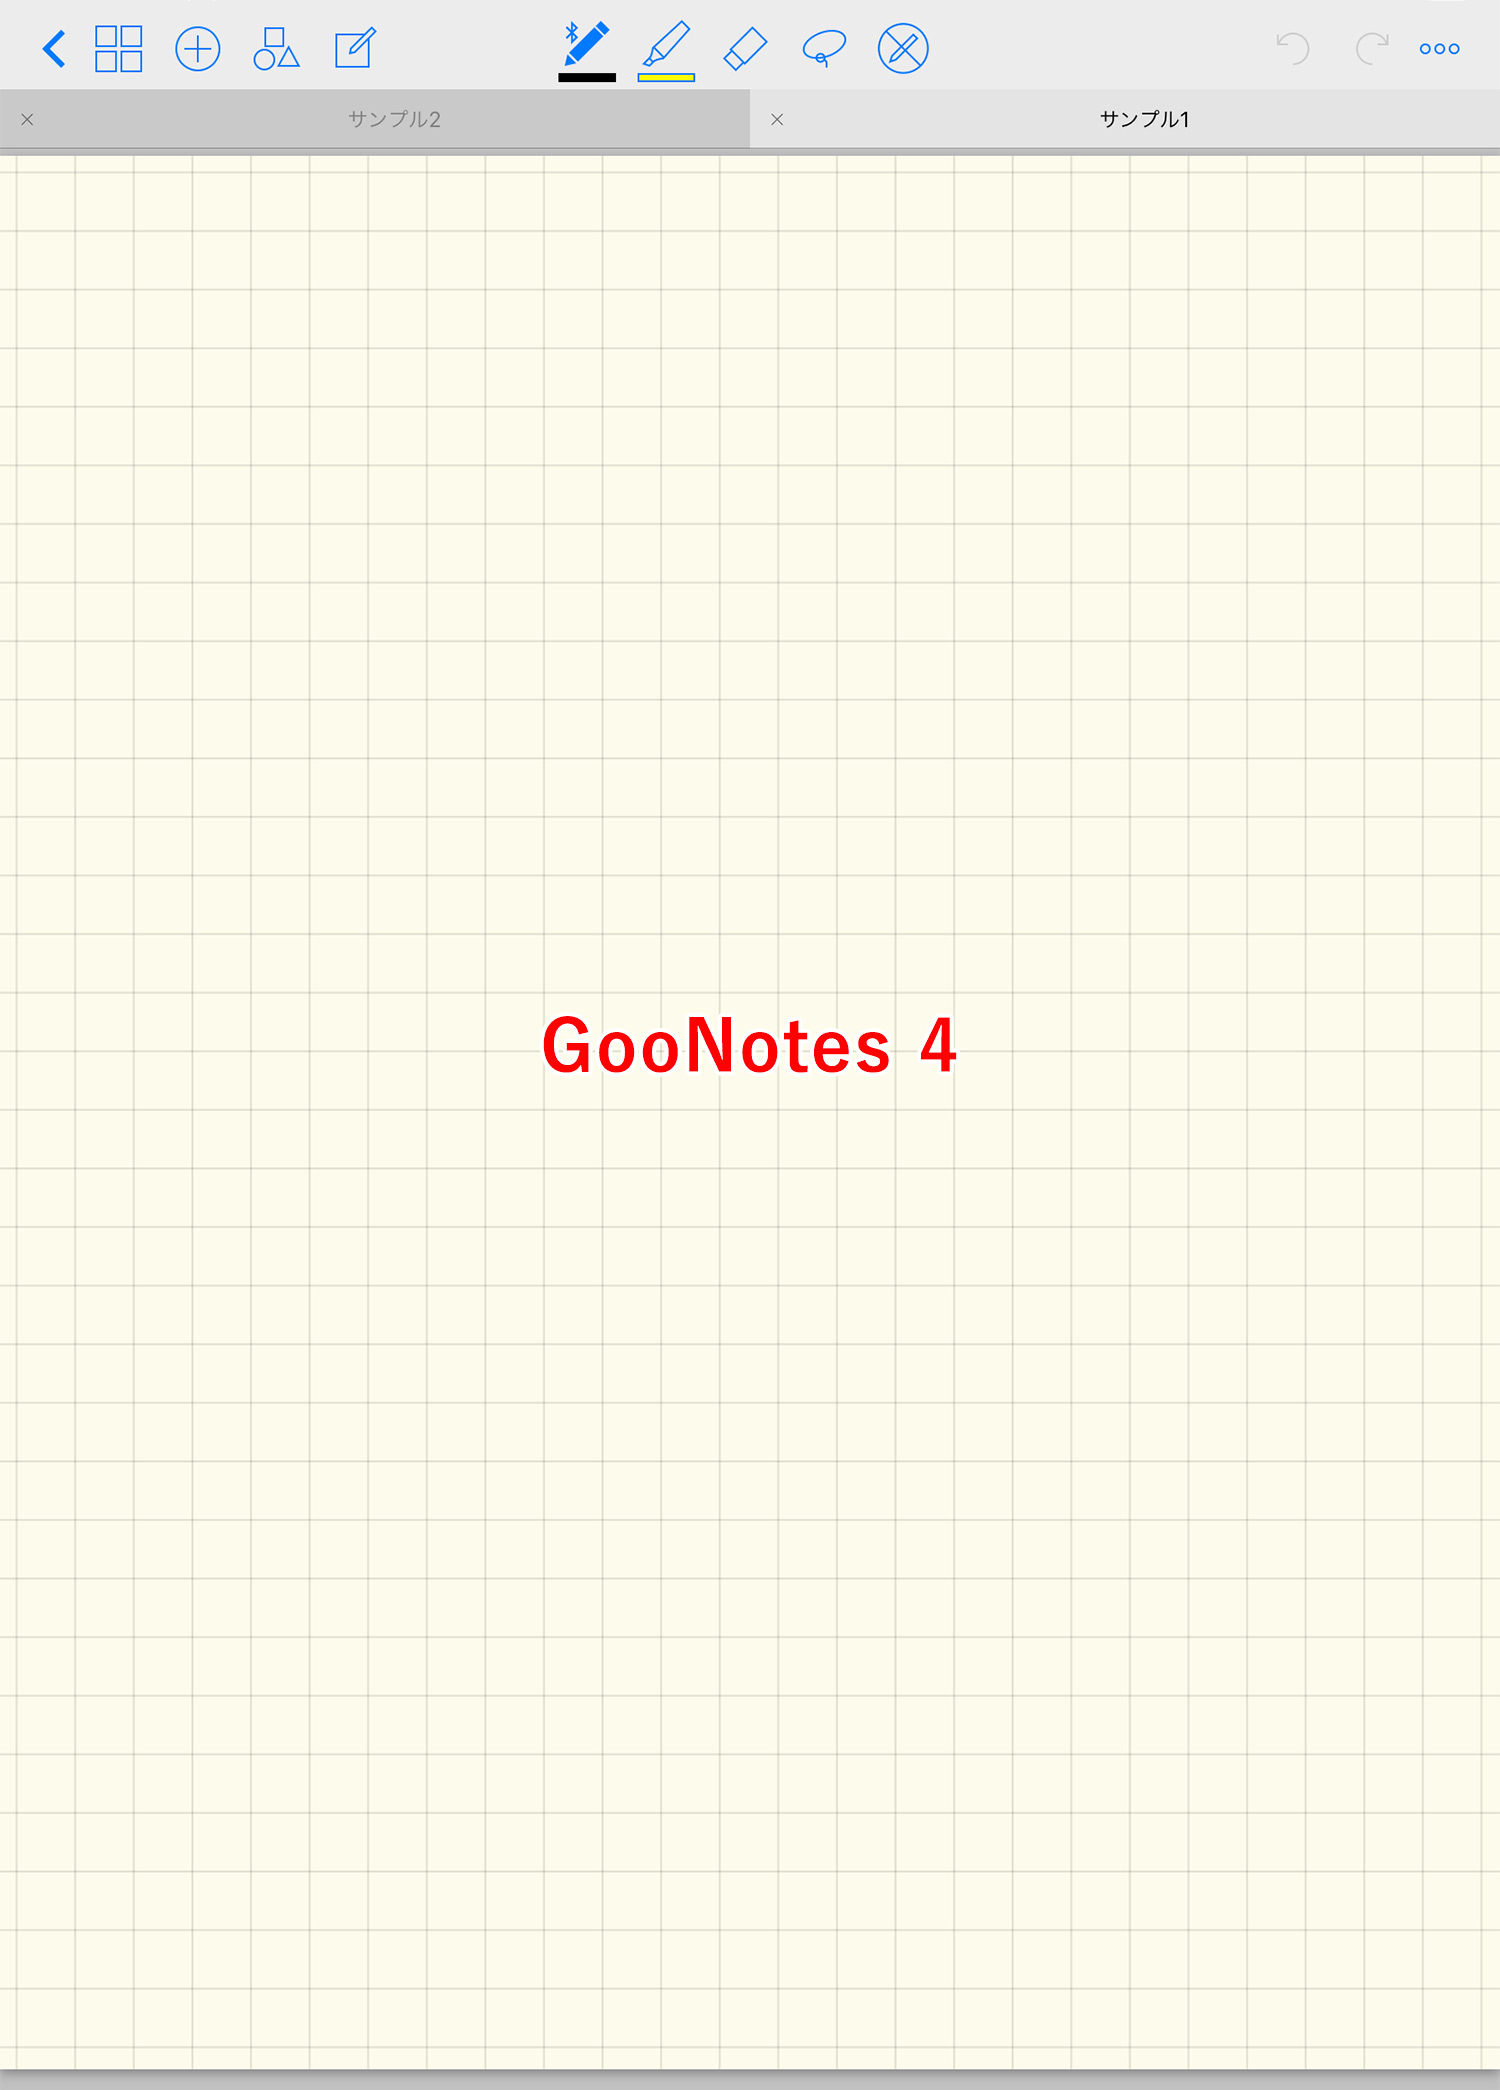 GoodNotes 4のノートのユーザーインターフェース(比較)